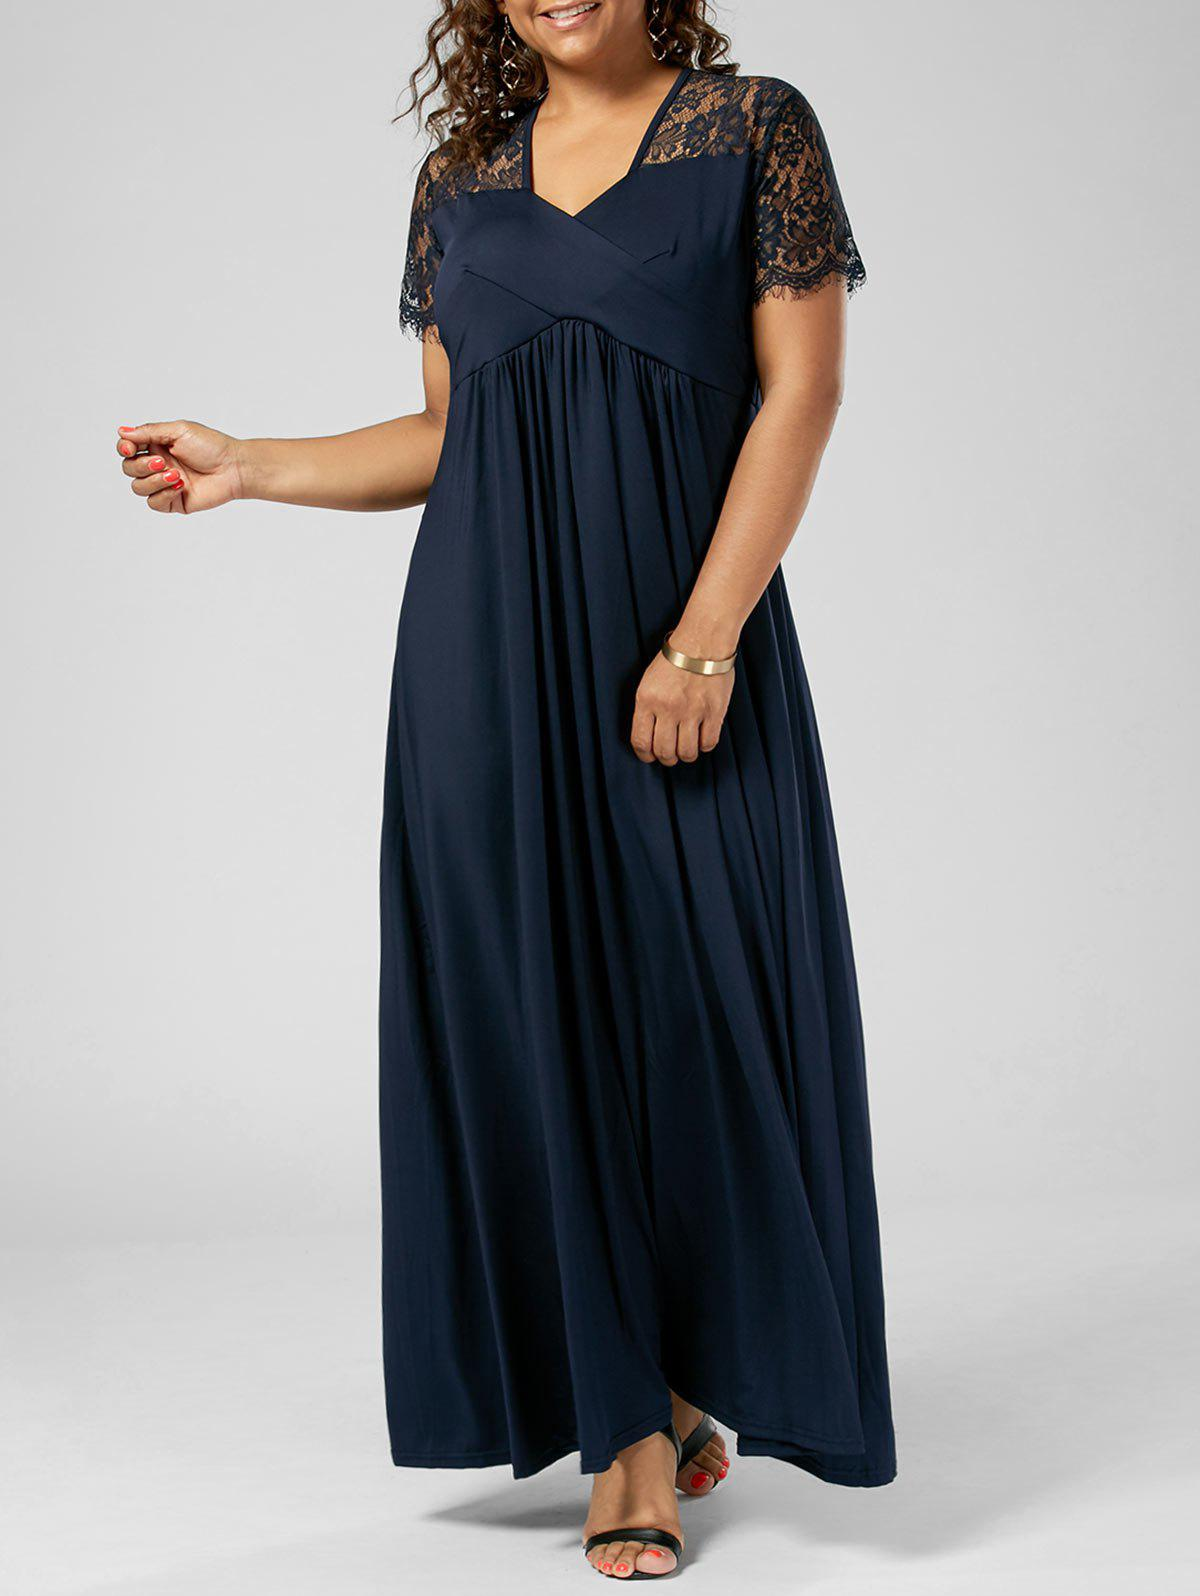 Plus Size Lace Insert Maxi Formal Dress with SleevesWOMEN<br><br>Size: 4XL; Color: PURPLISH BLUE; Style: Brief; Material: Polyester; Silhouette: A-Line; Dresses Length: Floor-Length; Neckline: V-Neck; Sleeve Length: Short Sleeves; Pattern Type: Solid Color; With Belt: No; Season: Summer; Weight: 0.6000kg; Package Contents: 1 x Dress;